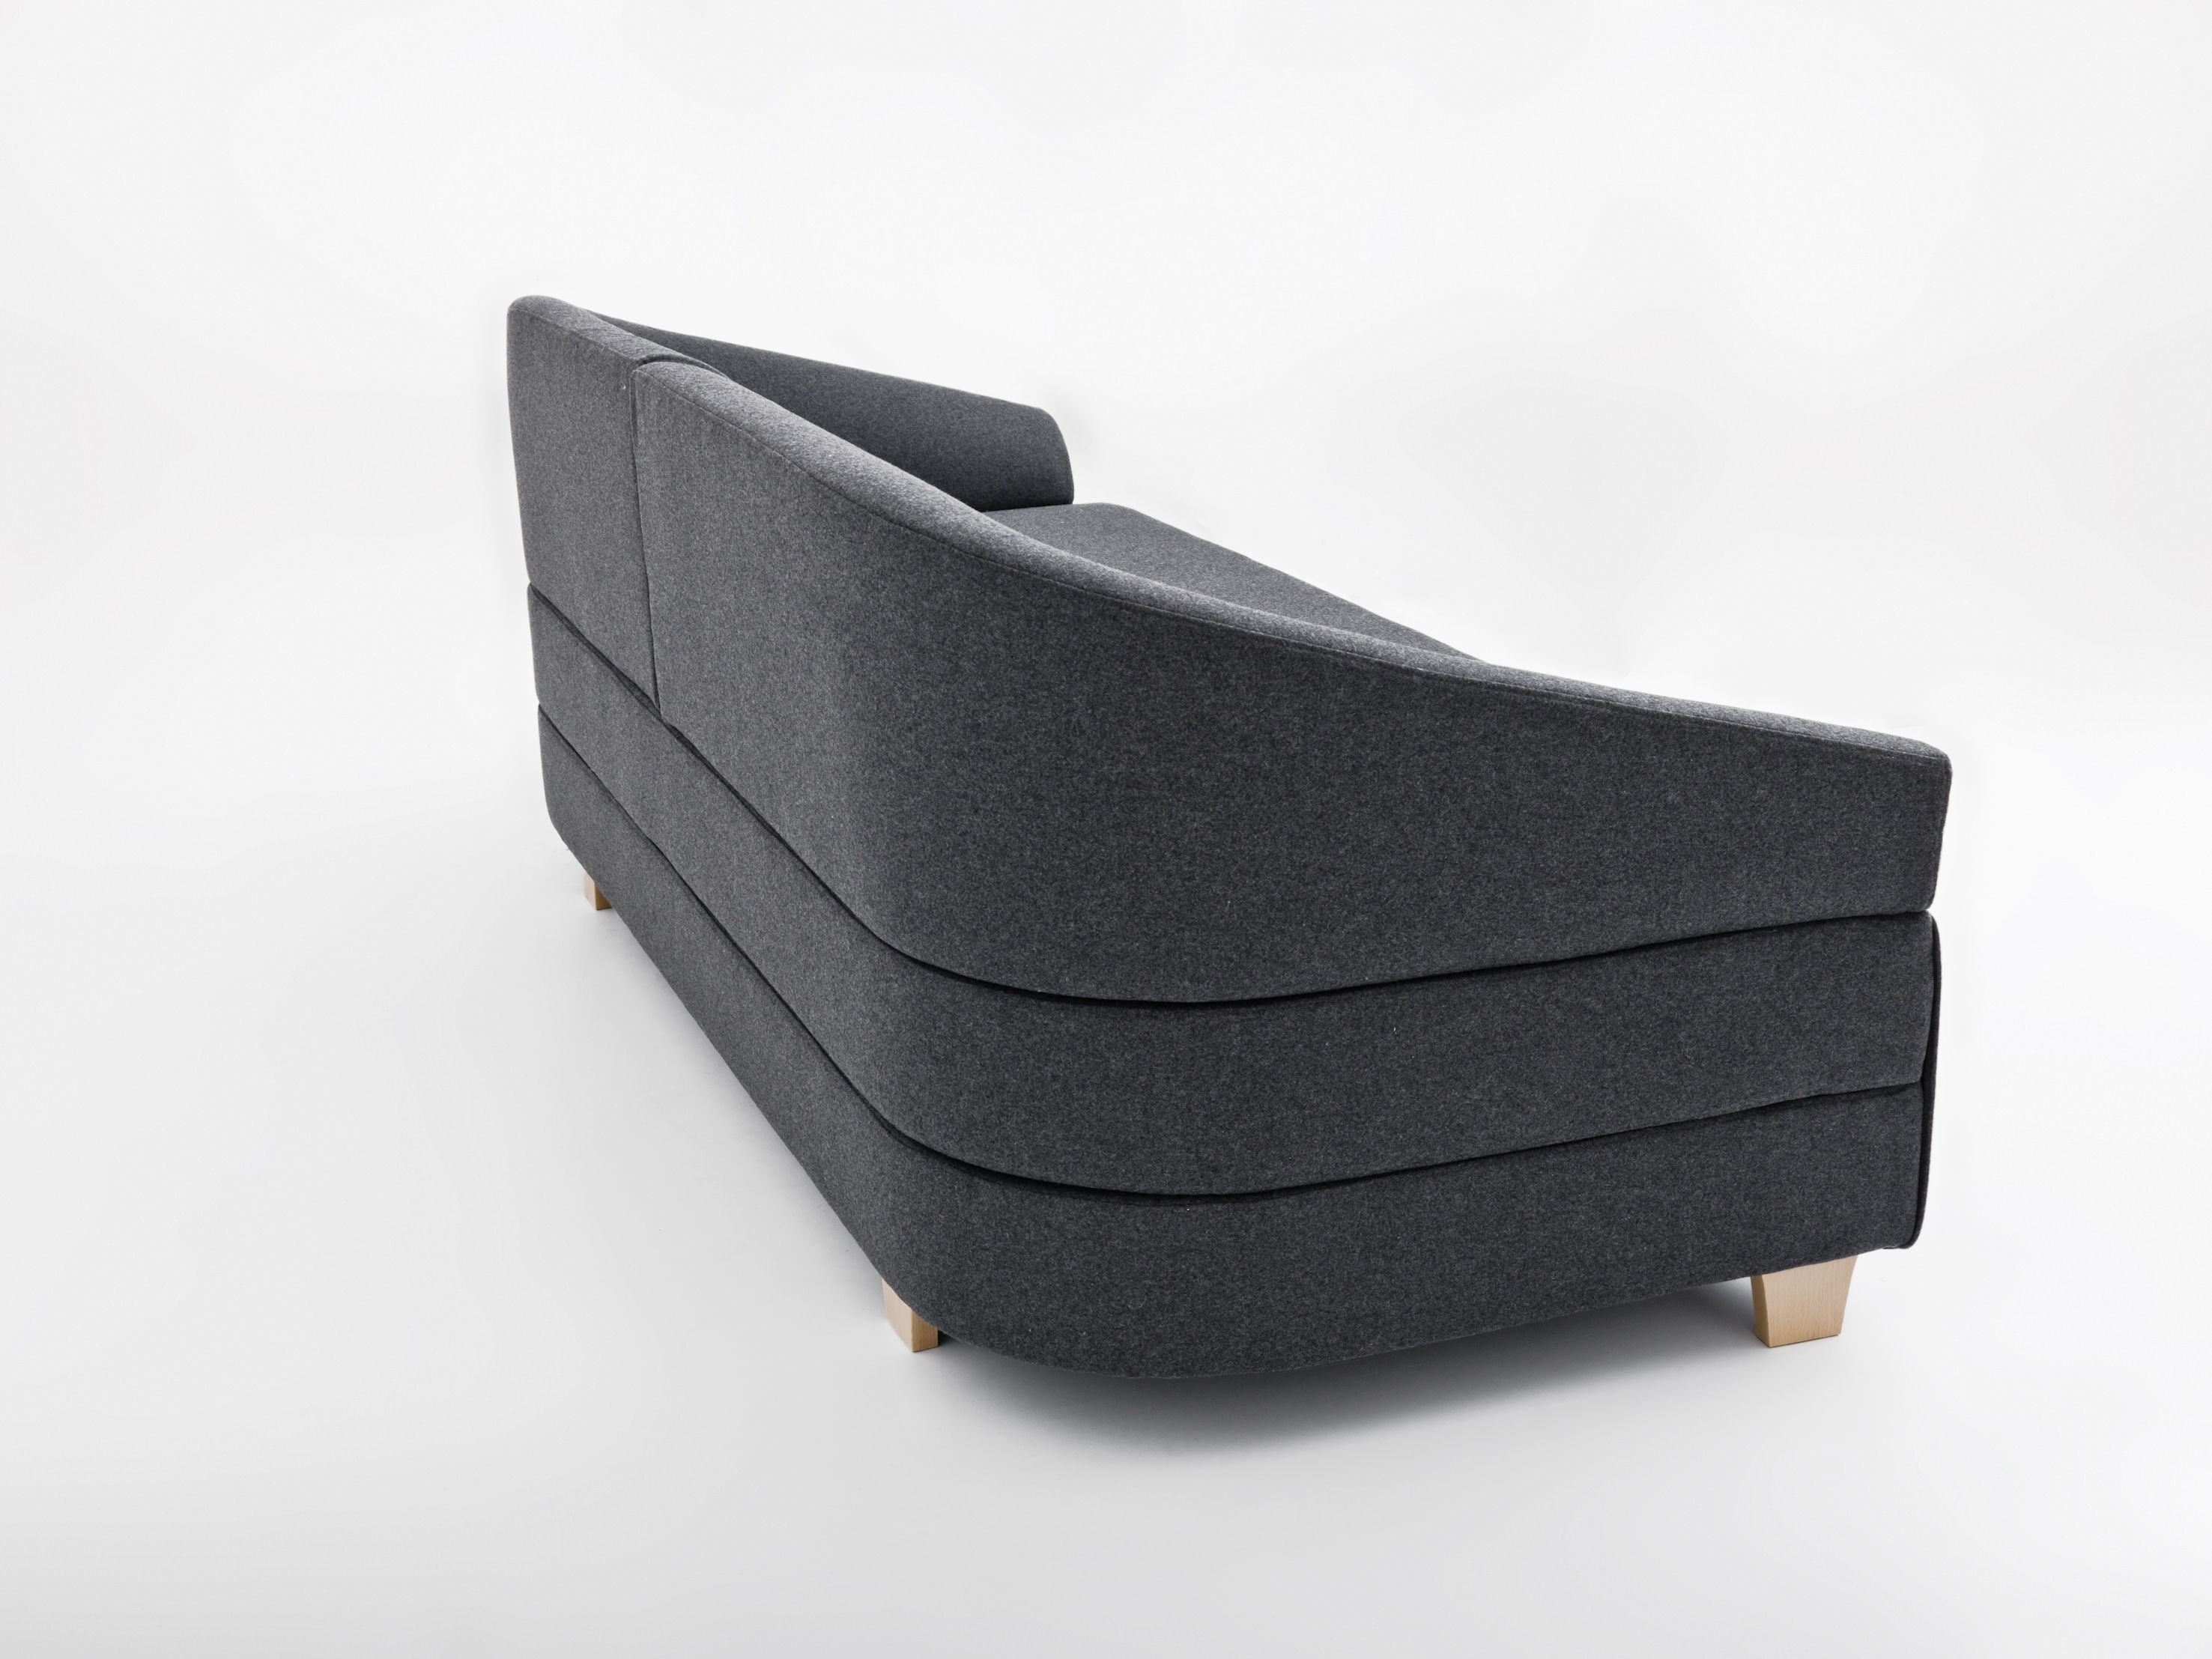 Lol sofa bed l 215 cm web exclusivity anthracite grey for Sofa 70 cm profundidad